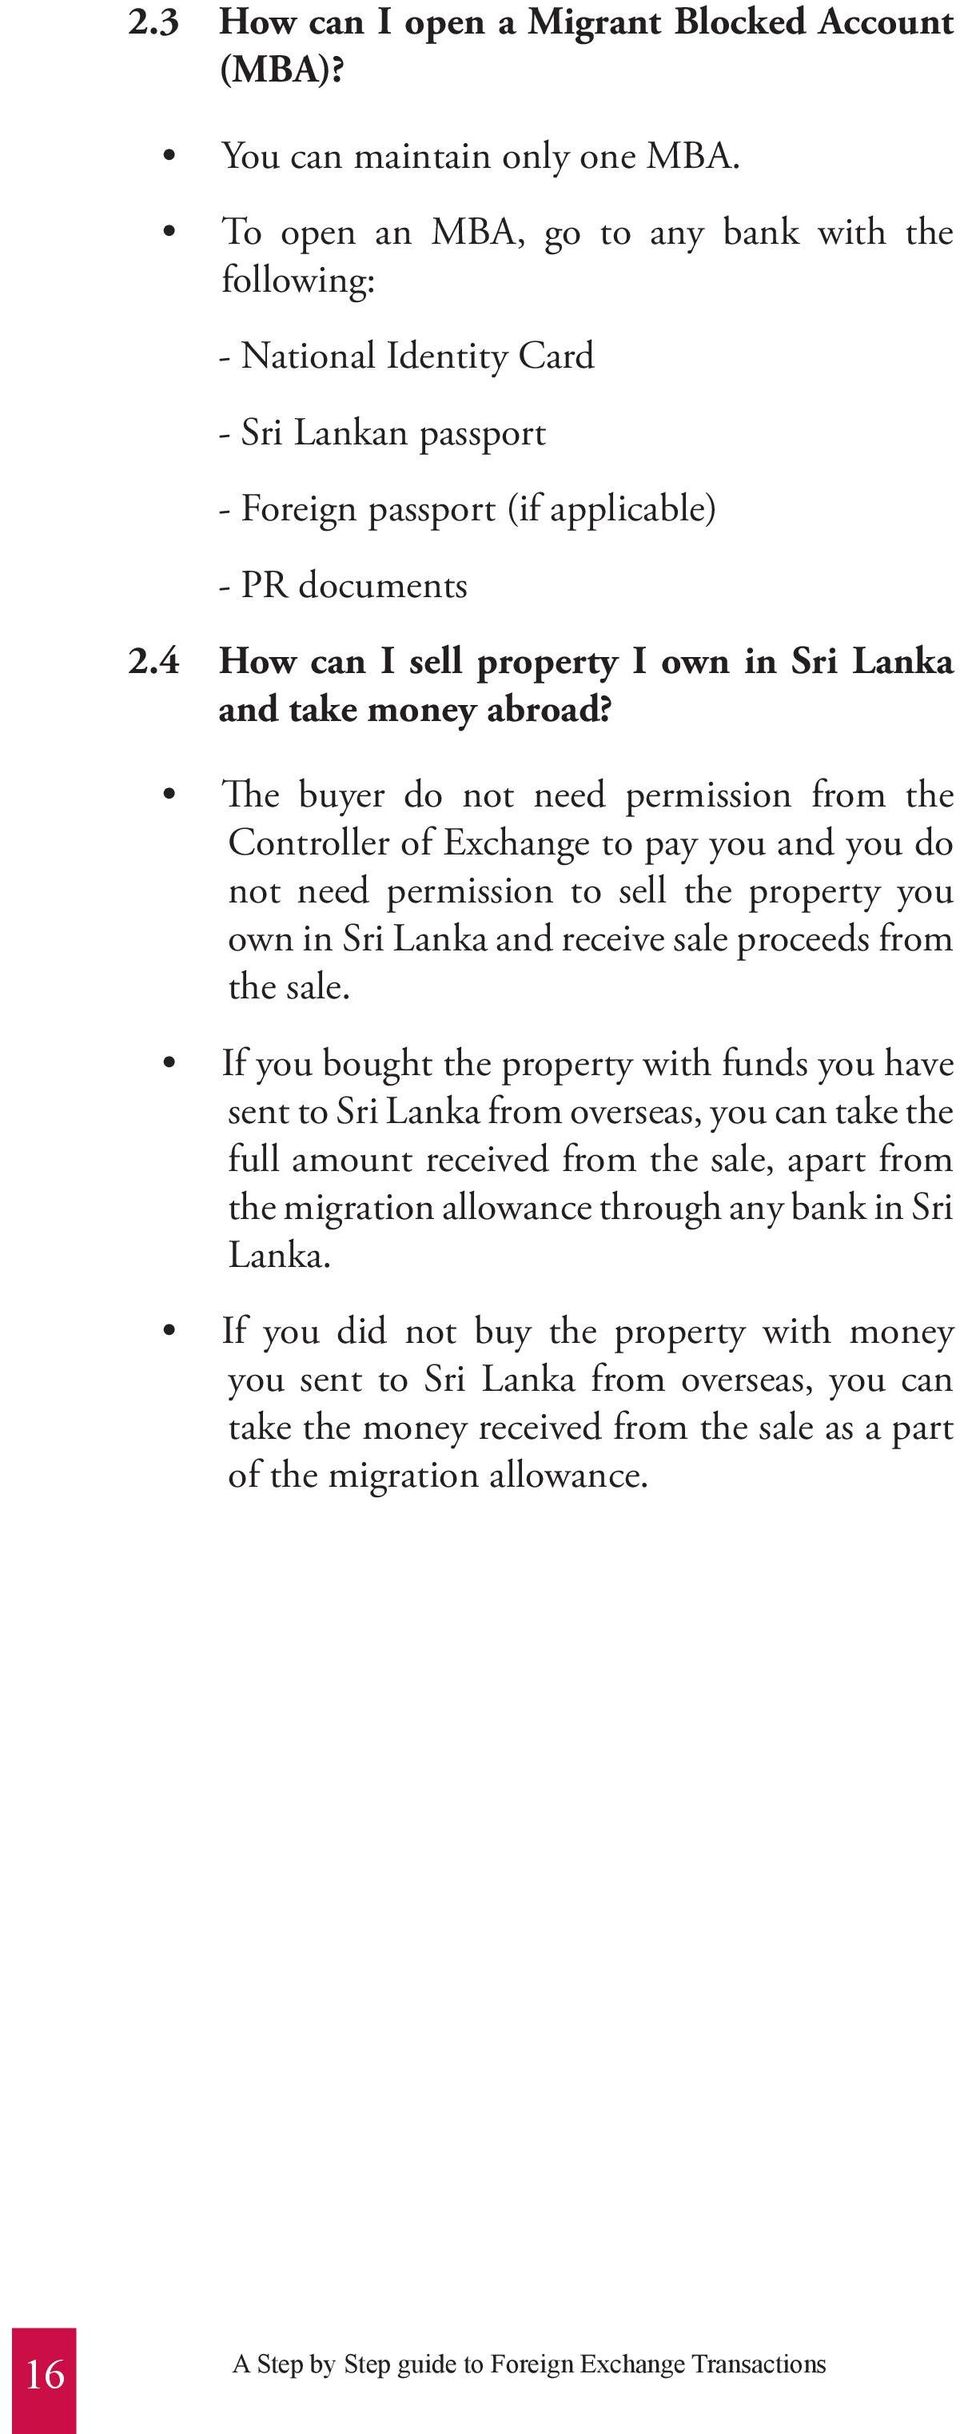 4 How can I sell property I own in Sri Lanka and take money abroad?